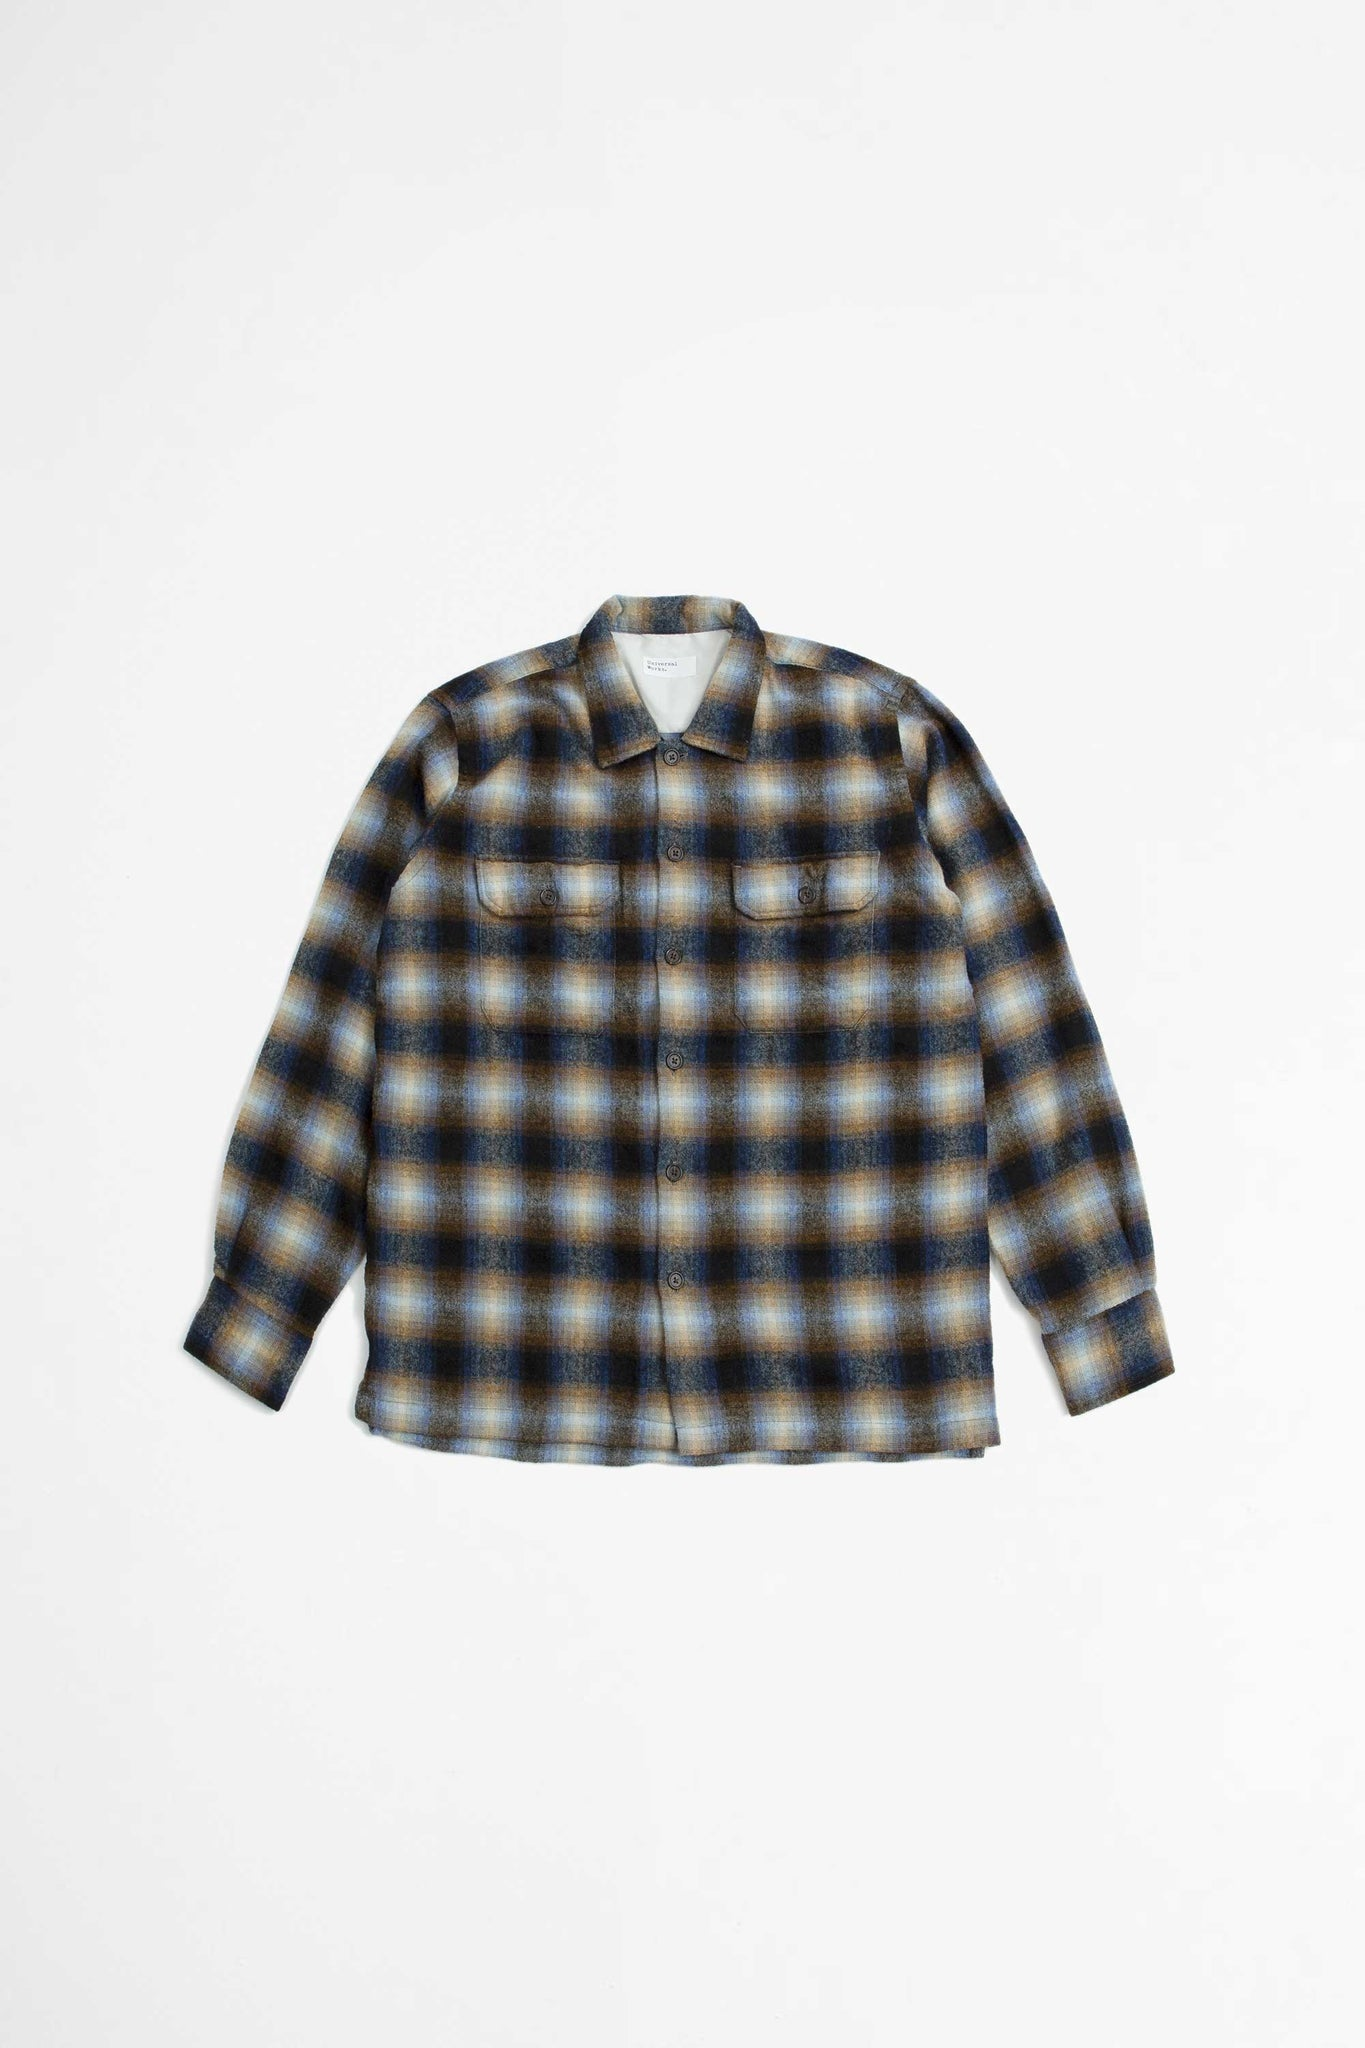 L/S utility shirt texas wool plaid navy